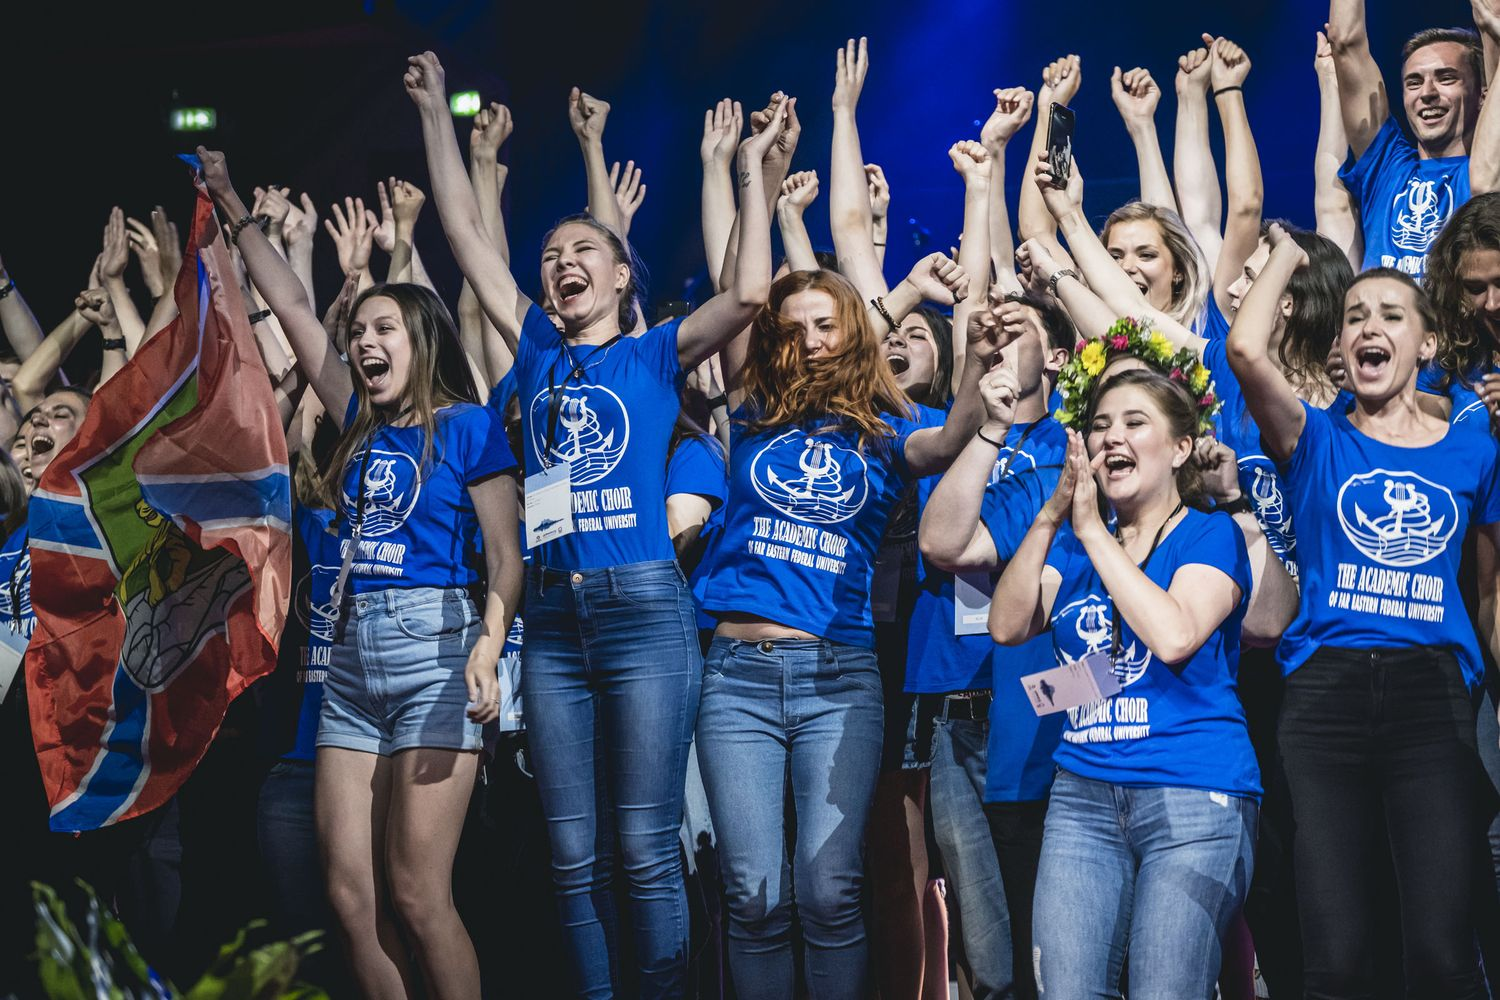 Cheering choir at Award Ceremony © Jonas Persson